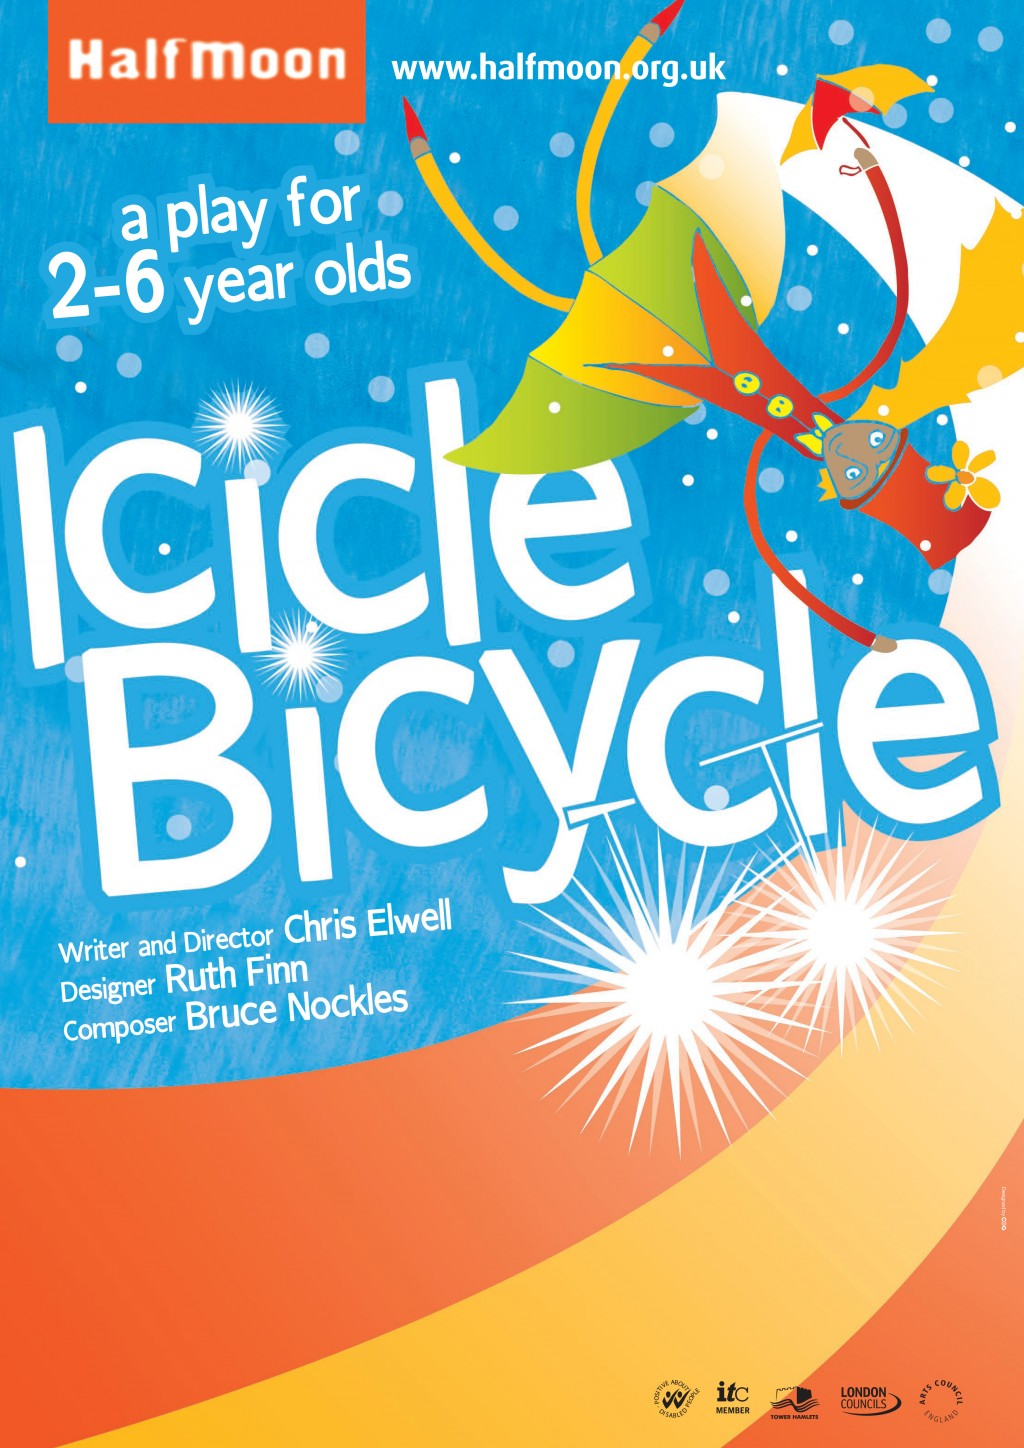 Icicle Bicycle Flyer Image